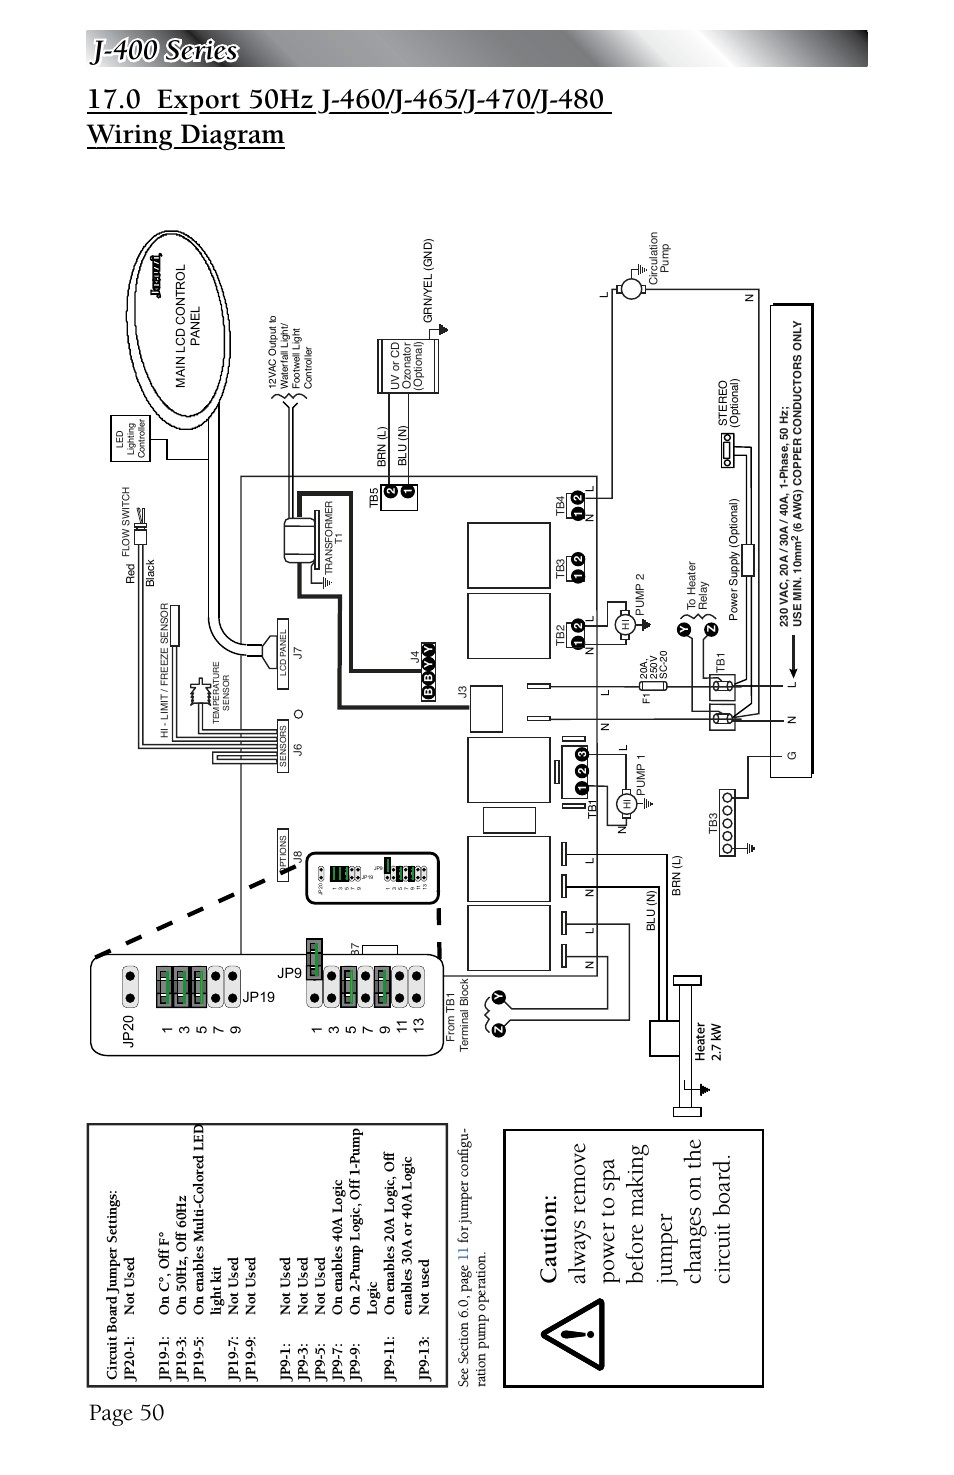 medium resolution of hl 630 wiring diagram spa wiring diagram inside hl 630 wiring diagram spa